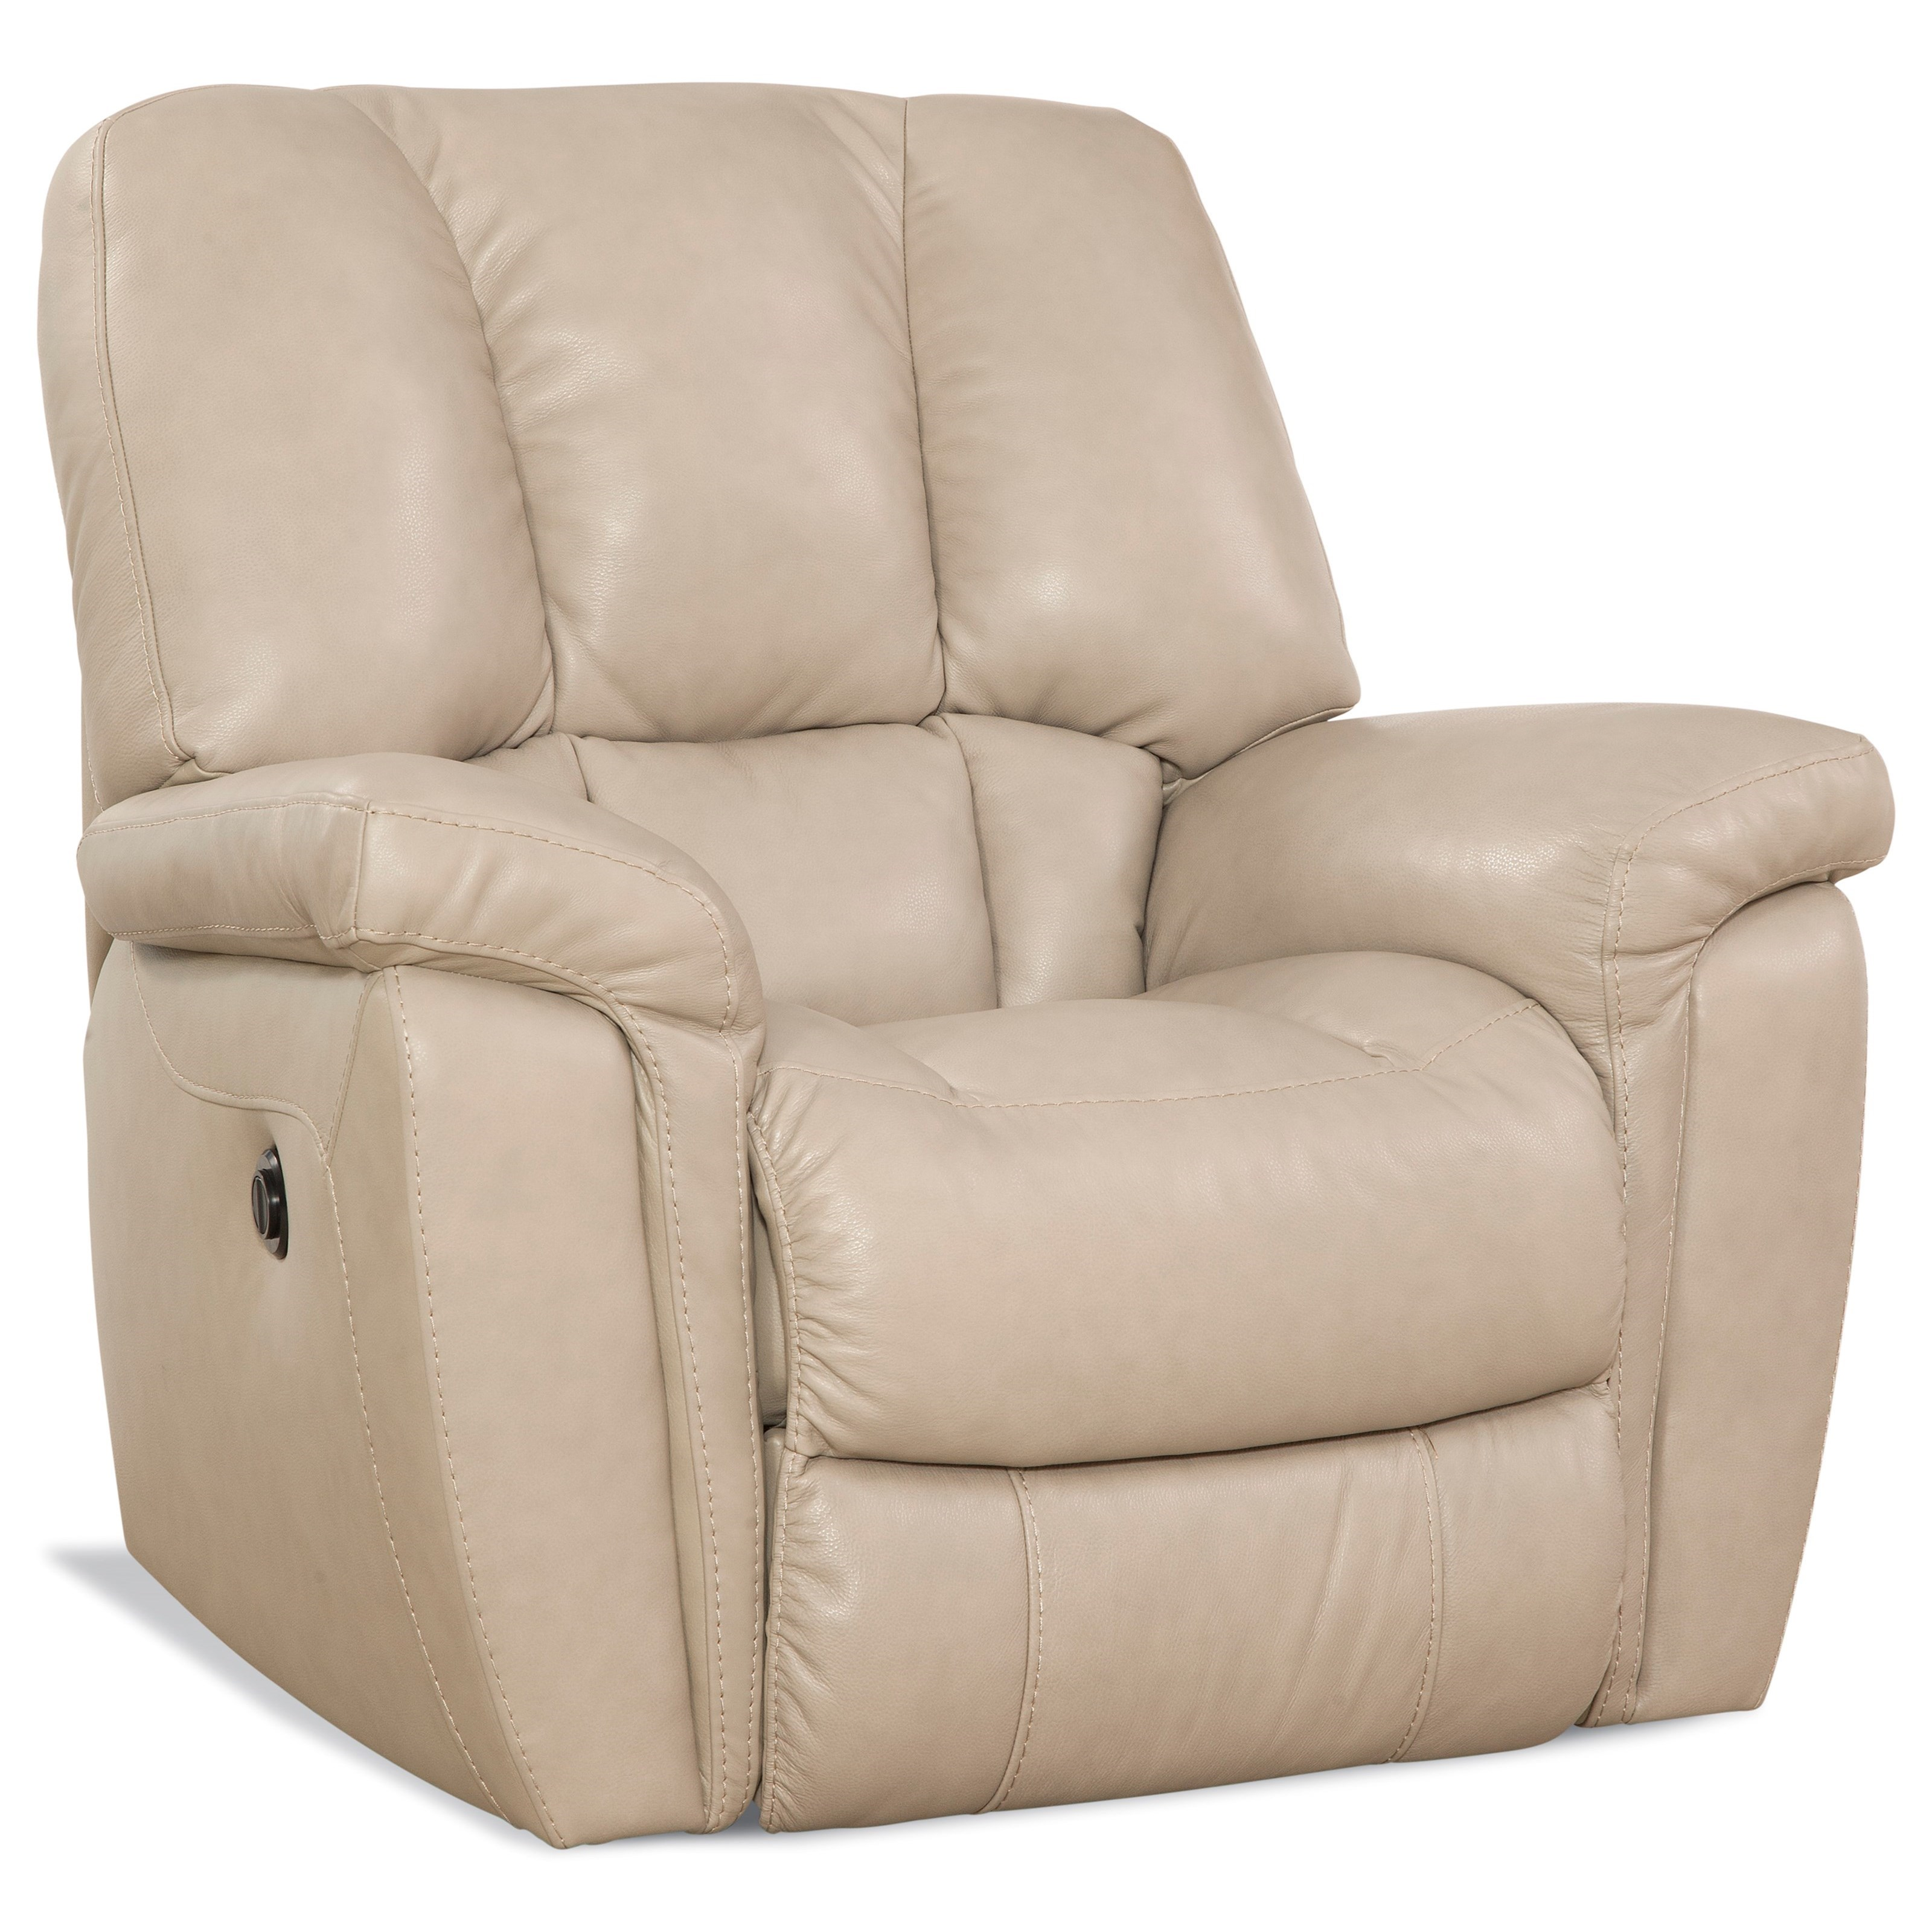 HomeStretch 159 Collection Rocker Recliner - Item Number: 159-91-17